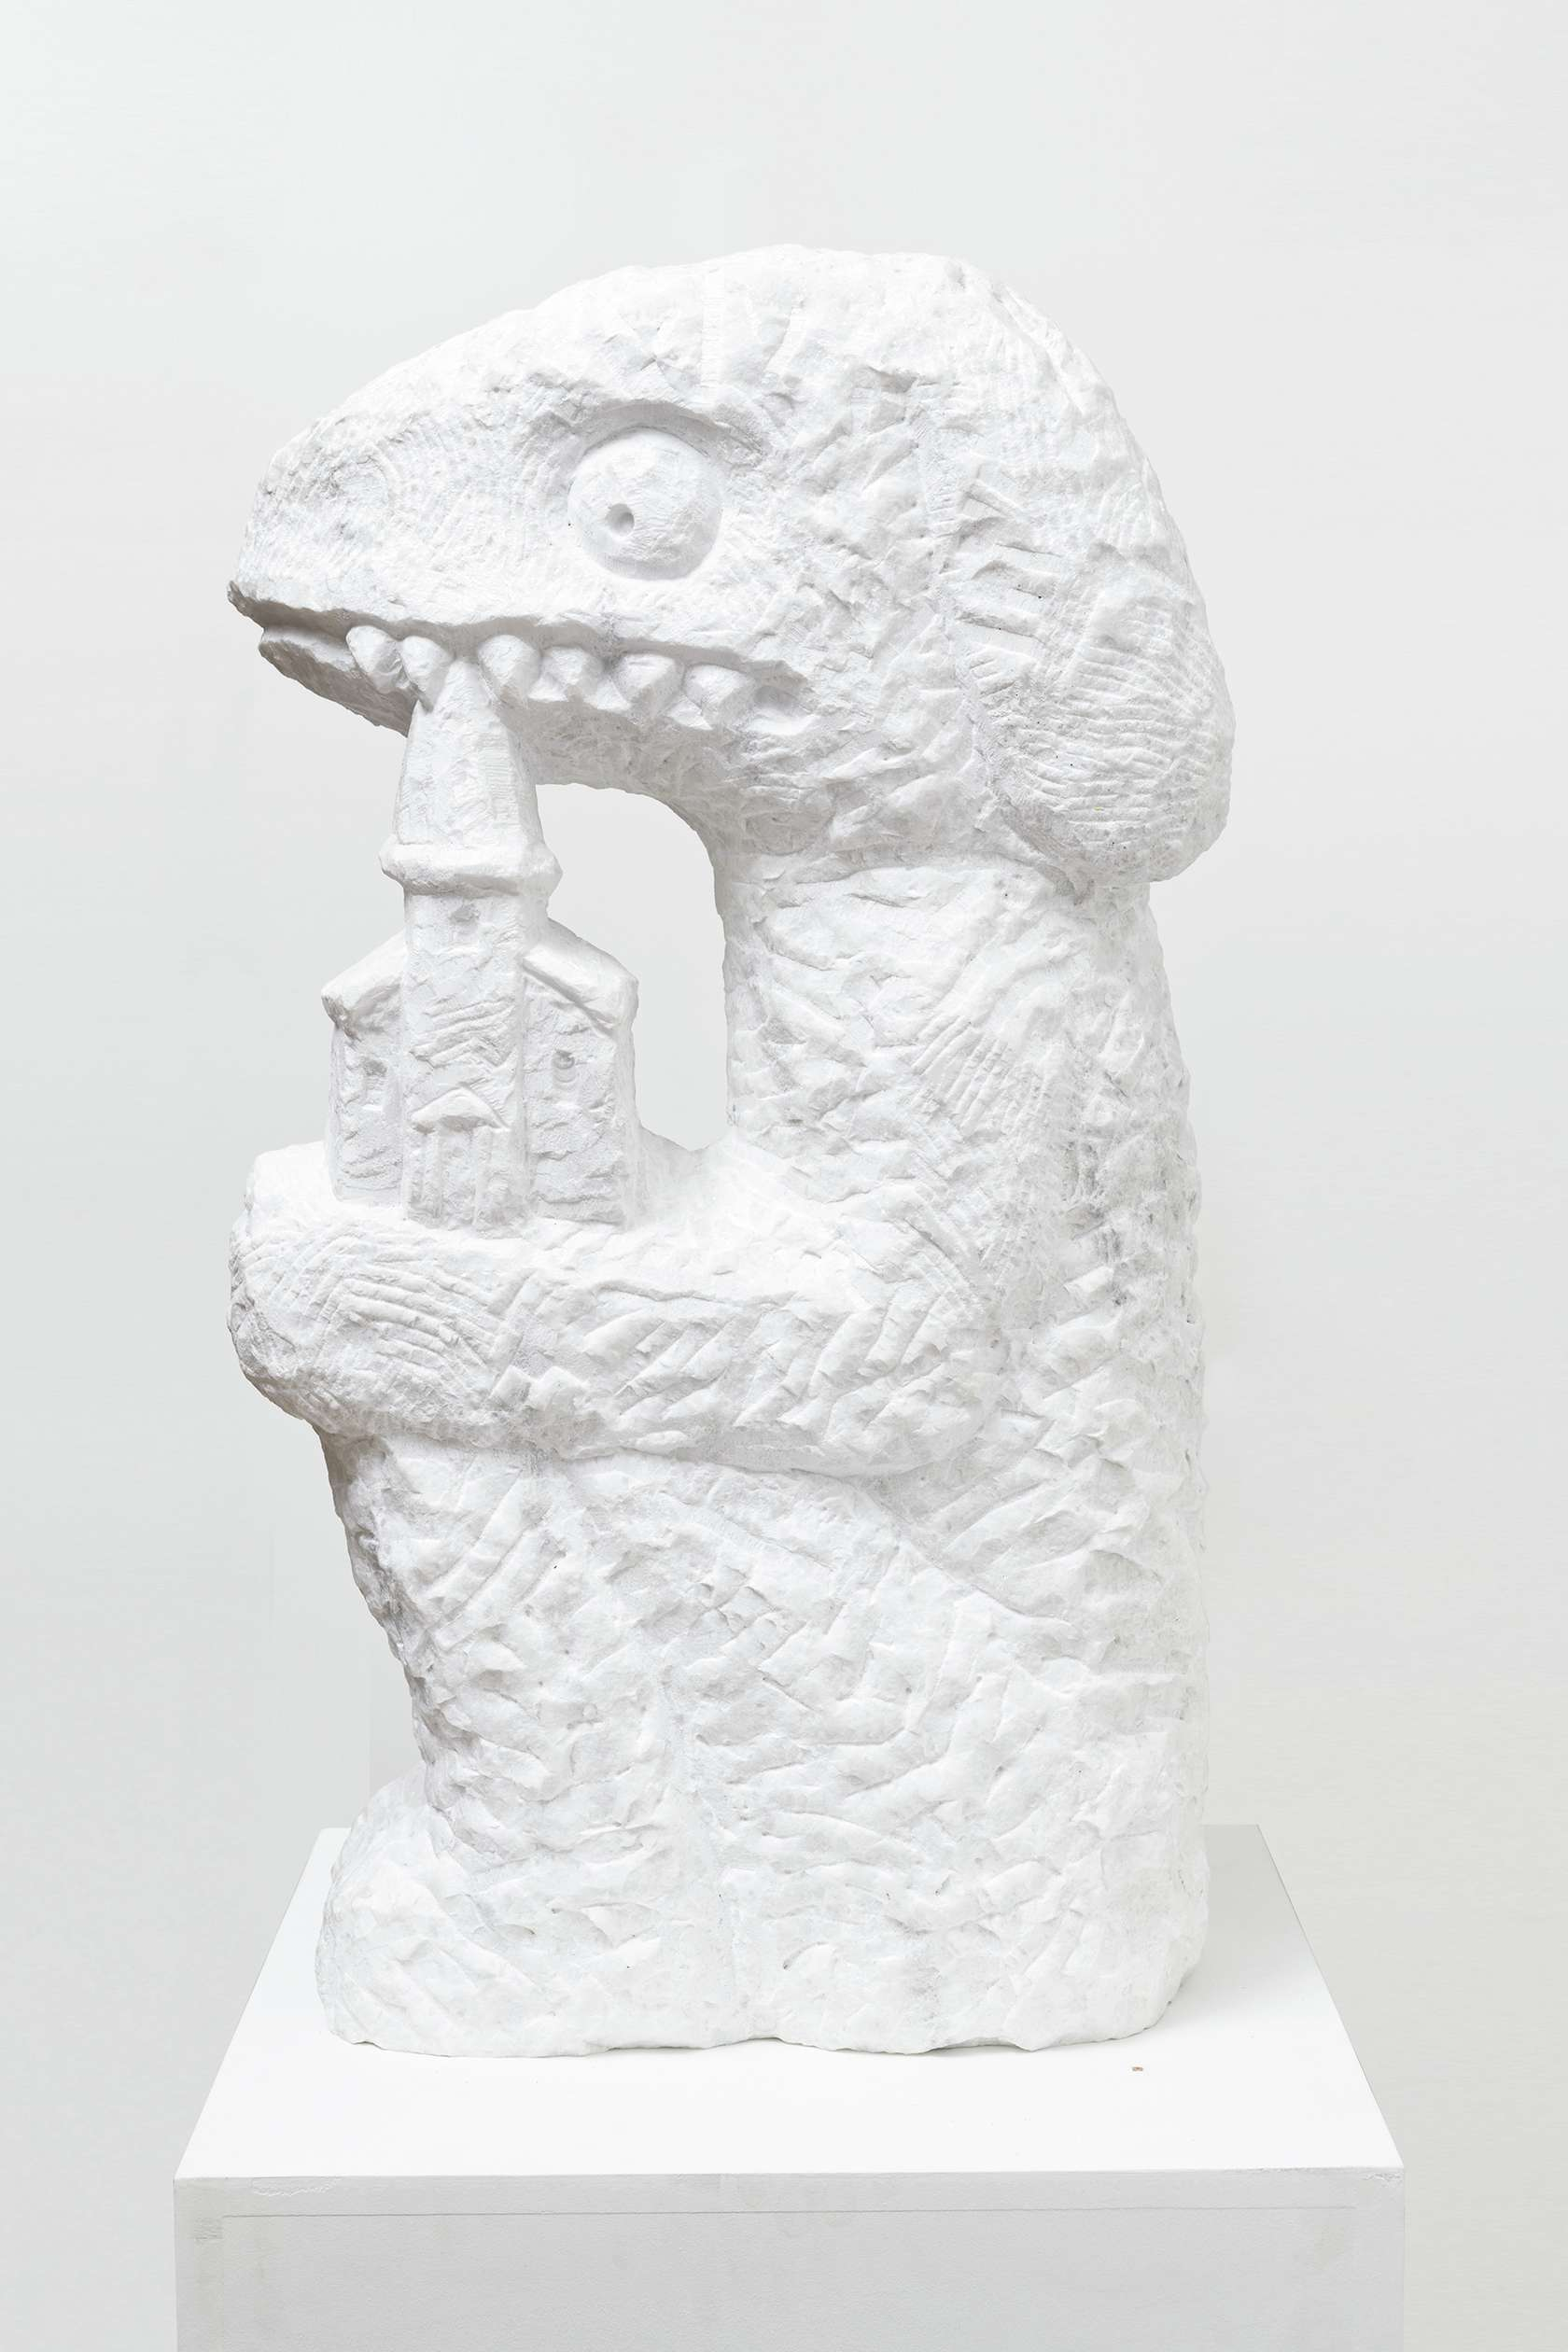 Stefan Rinck, Donor figure, 2019 Marbre80 x 45 x 25 cm / 31 1/2 x 17 6/8 x 9 7/8 inches